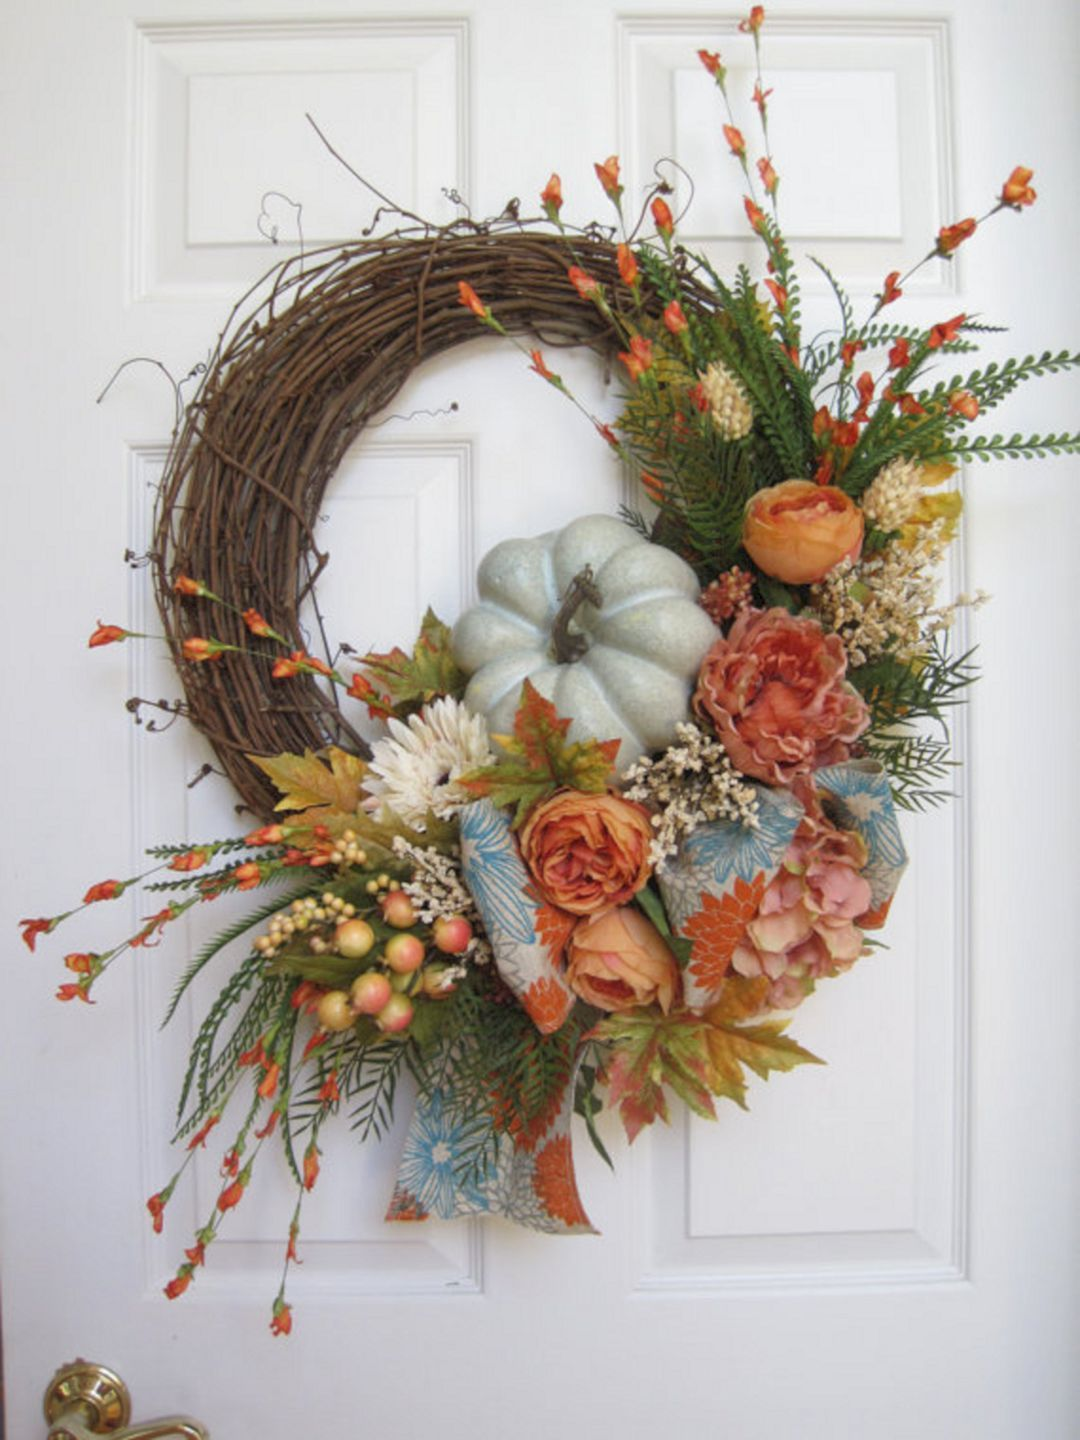 herbstkranz selber basteln beste herbstdeko diy ideen, best ideas to create fall wreaths diy: top 30 handy inspirations, Design ideen